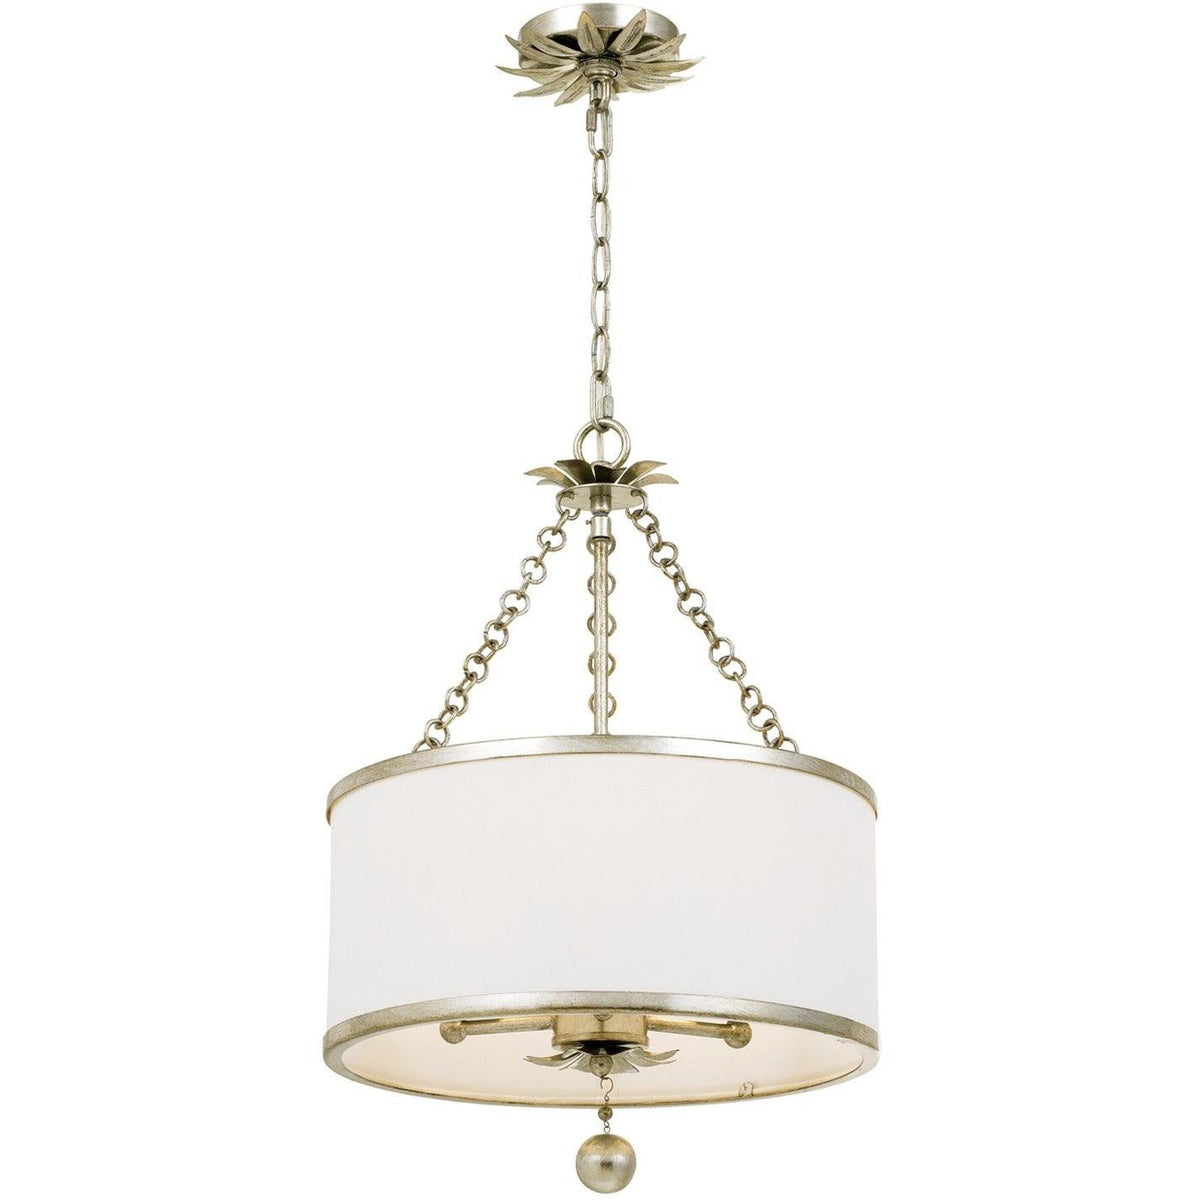 Crystorama - 513-SA - Three Light Chandelier - Broche - Antique Silver